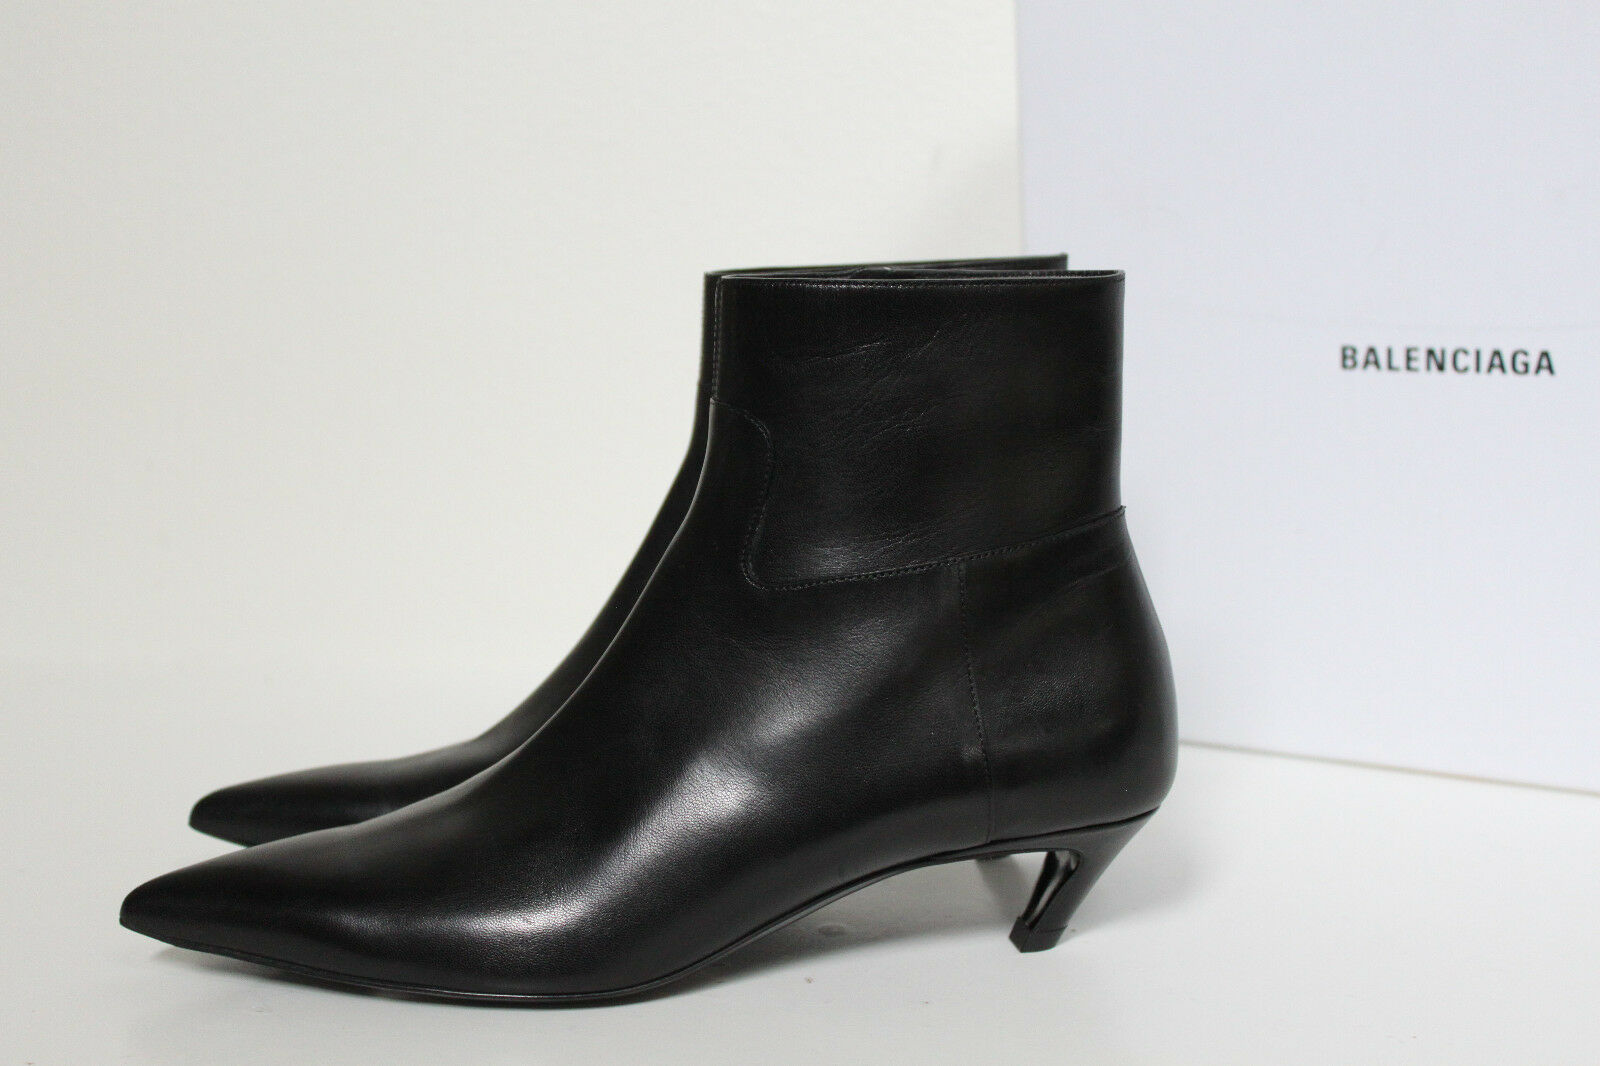 Sz 7   37 Balenciaga Balenciaga Balenciaga Slash Black Leather Pointed Toe Ankle Boot Low Heel shoes 661464